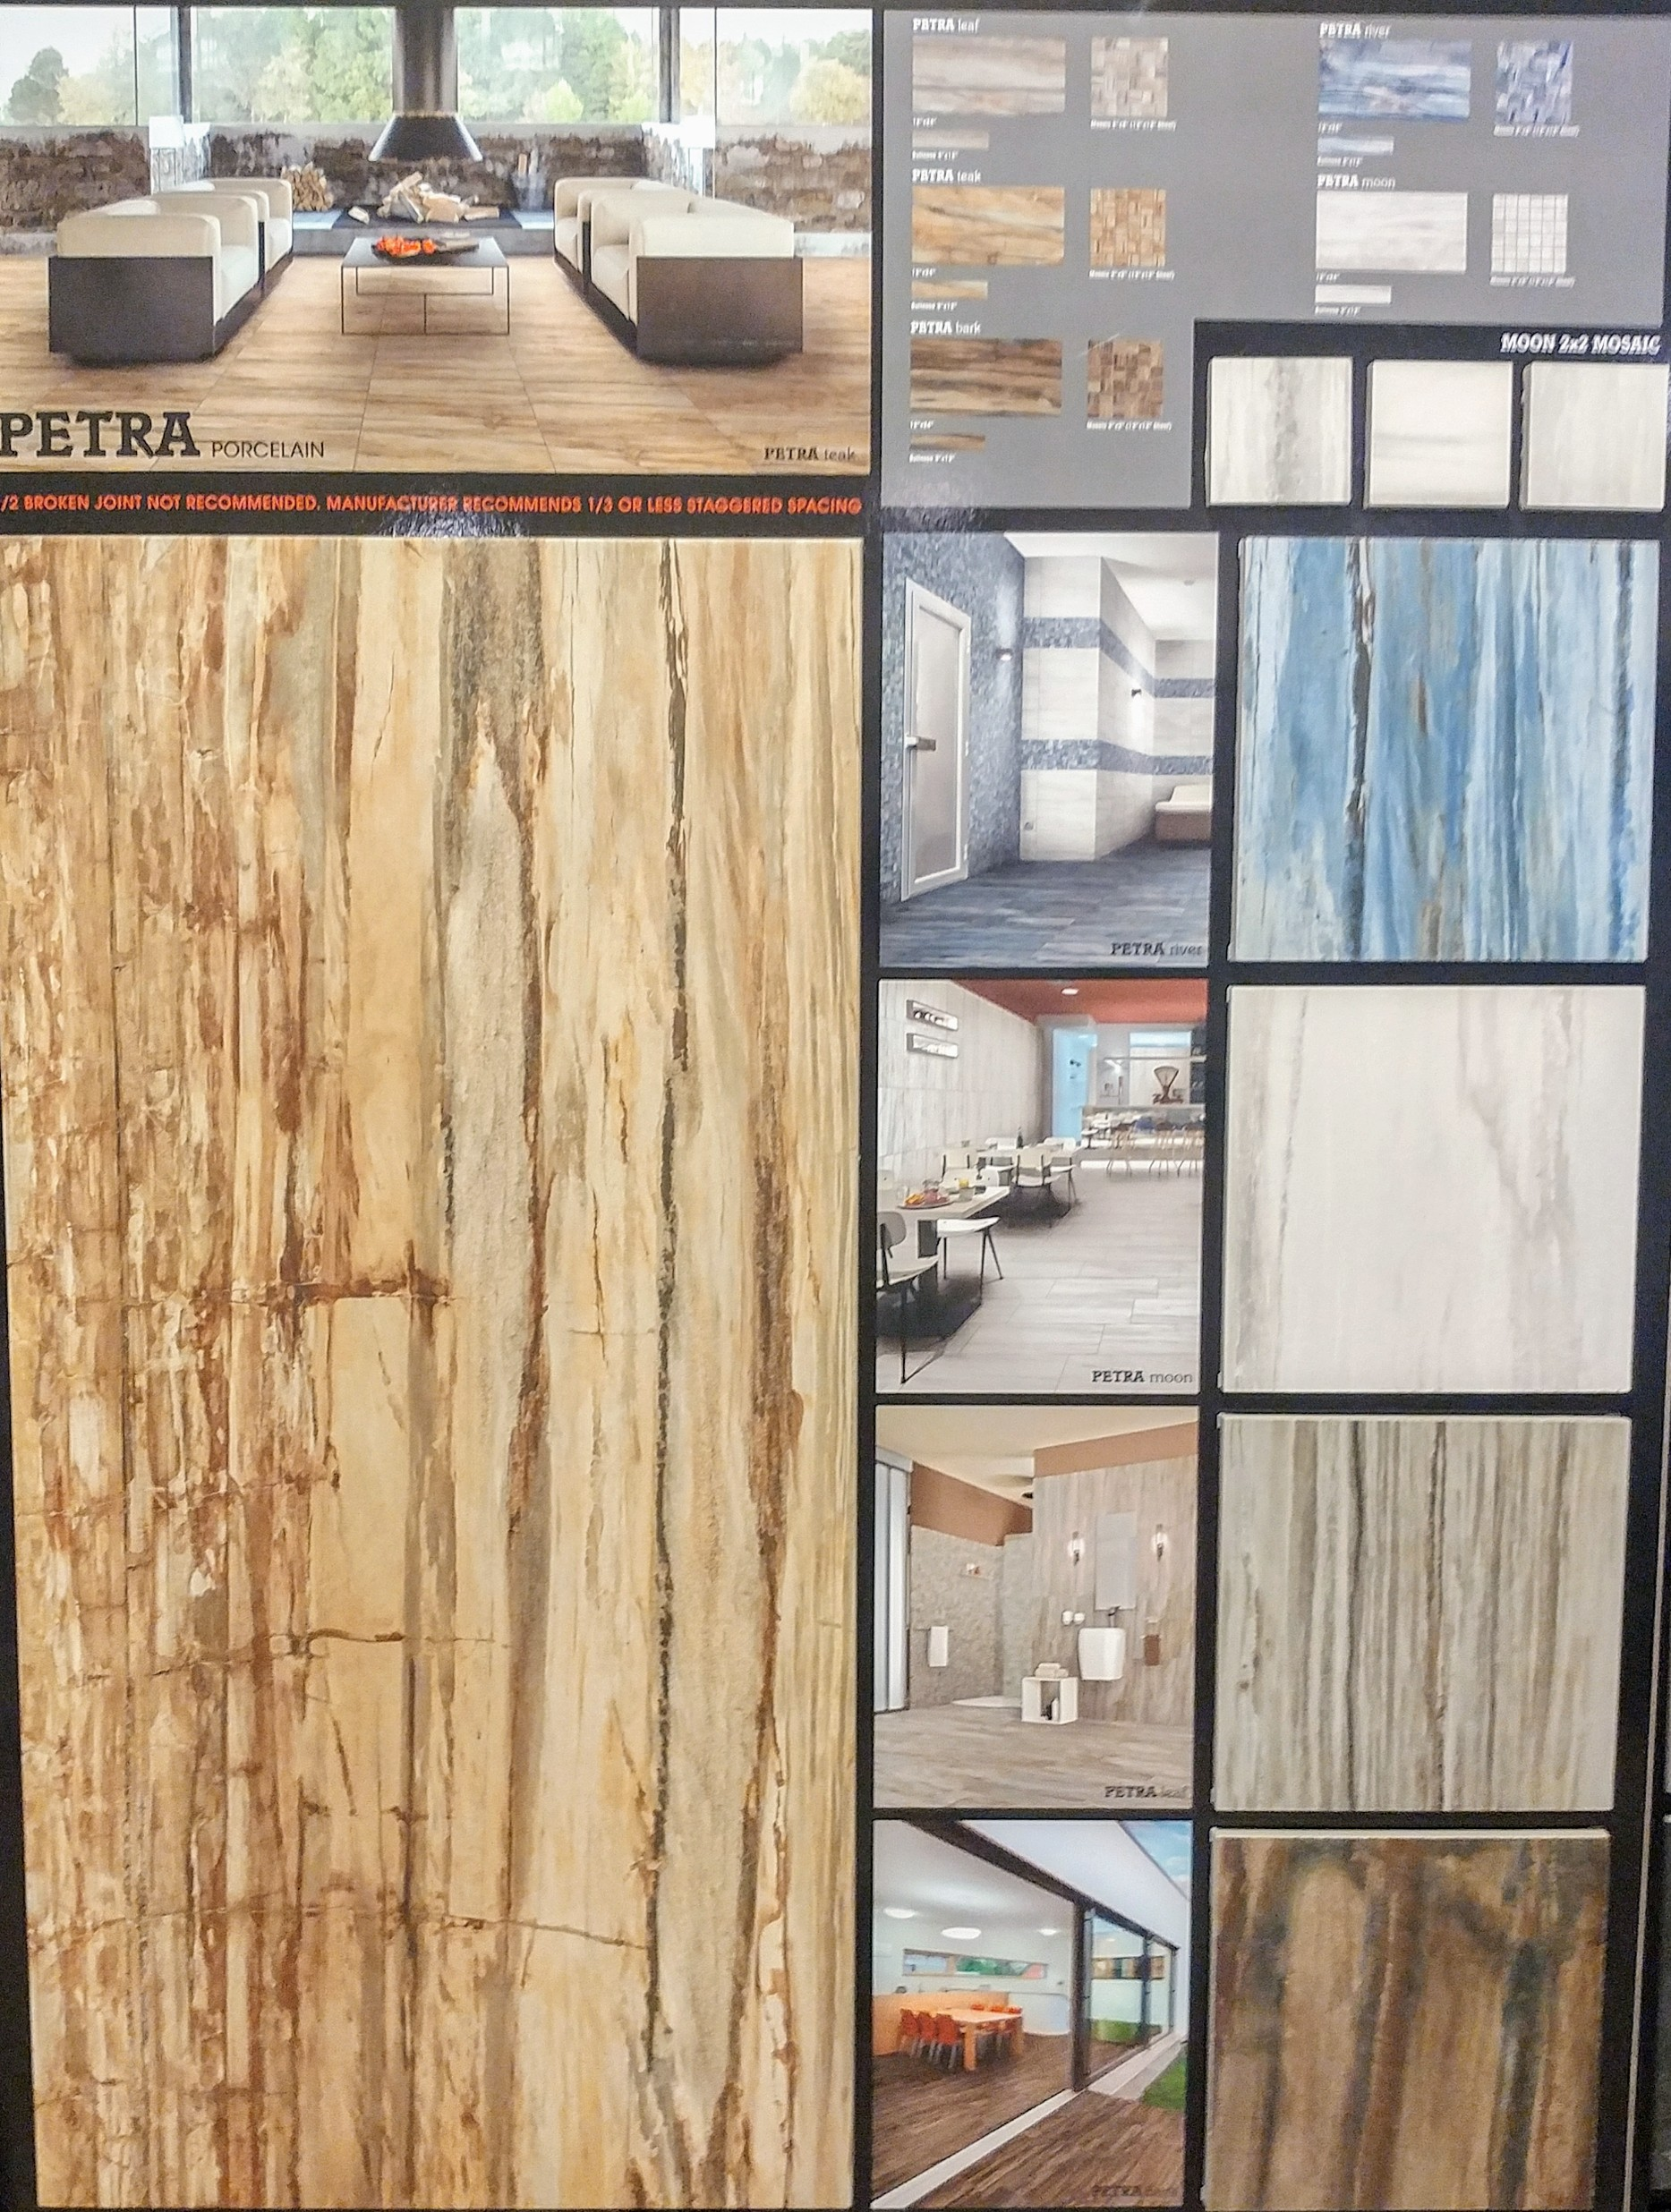 Petra Porcelain Tile Display